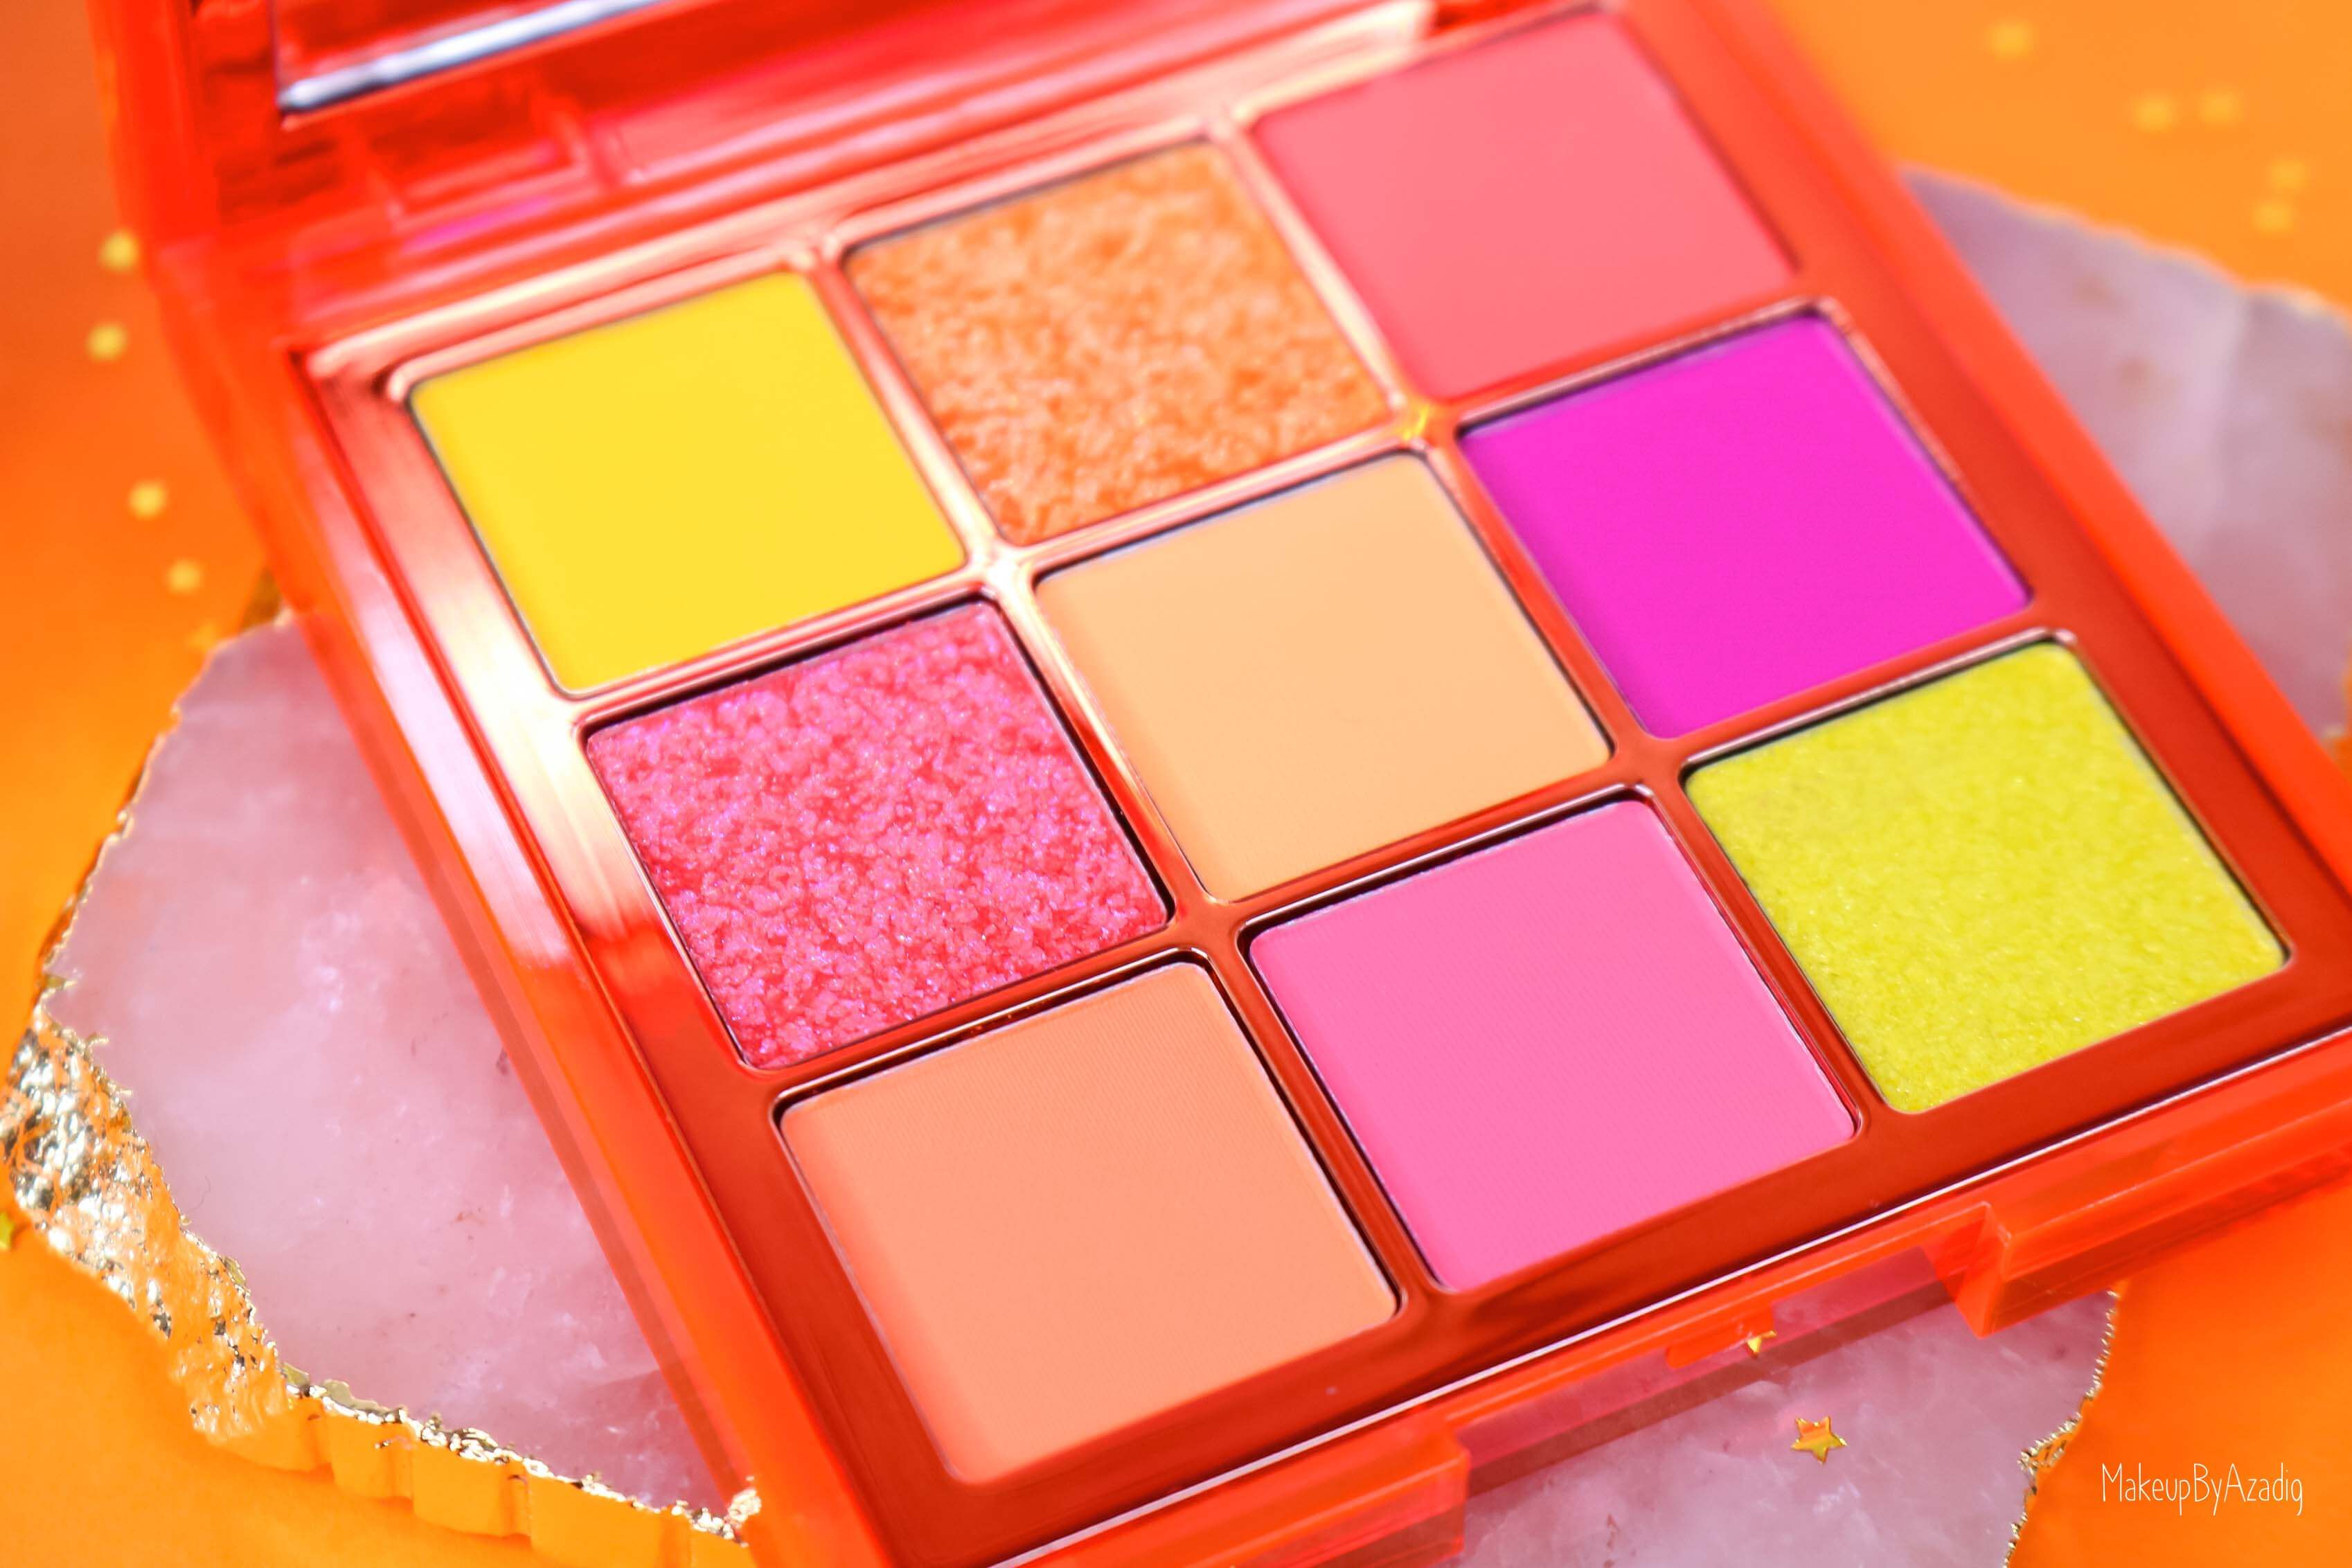 revue-review-palette-neon-obsession-huda-beauty-orange-pink-green-neon-palette-fard-paupieres-fluo-swatch-avis-prix-makeupbyazadig-zoom